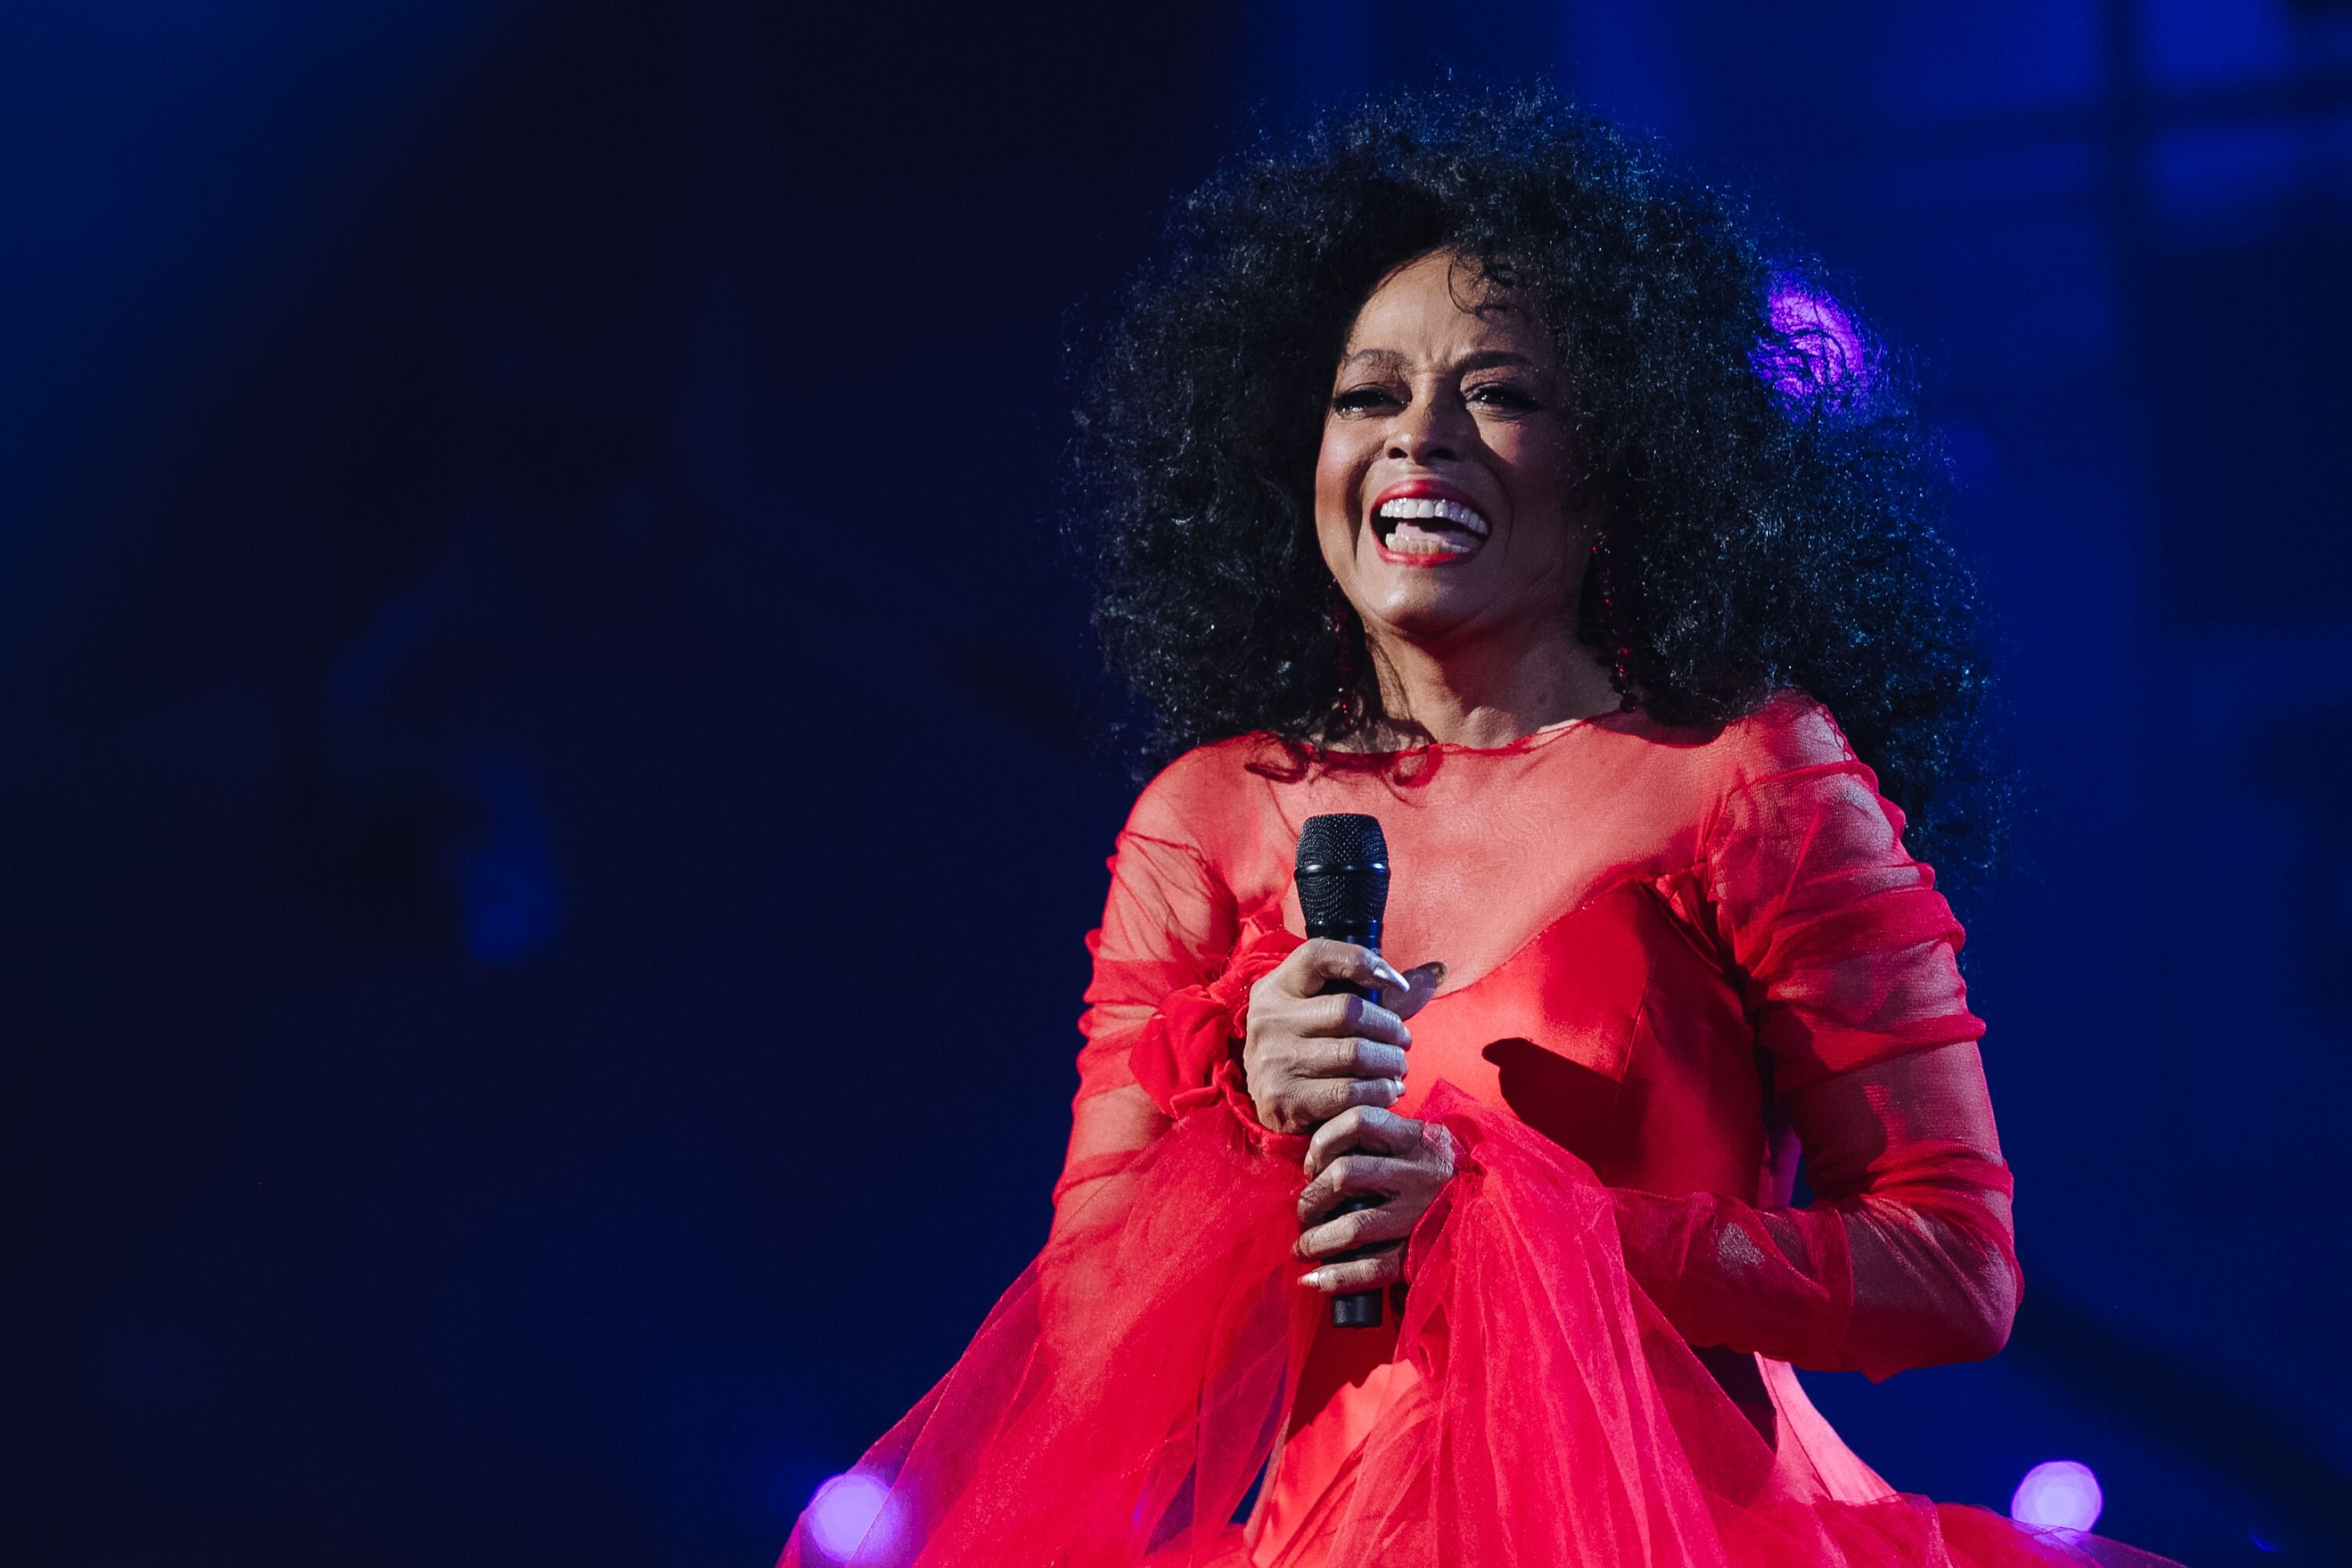 Diana Ross performs onstage at the 61st annual GRAMMY Awards at Staples Center on February 10, 2019 in Los Angeles, California | Photo: Getty Images